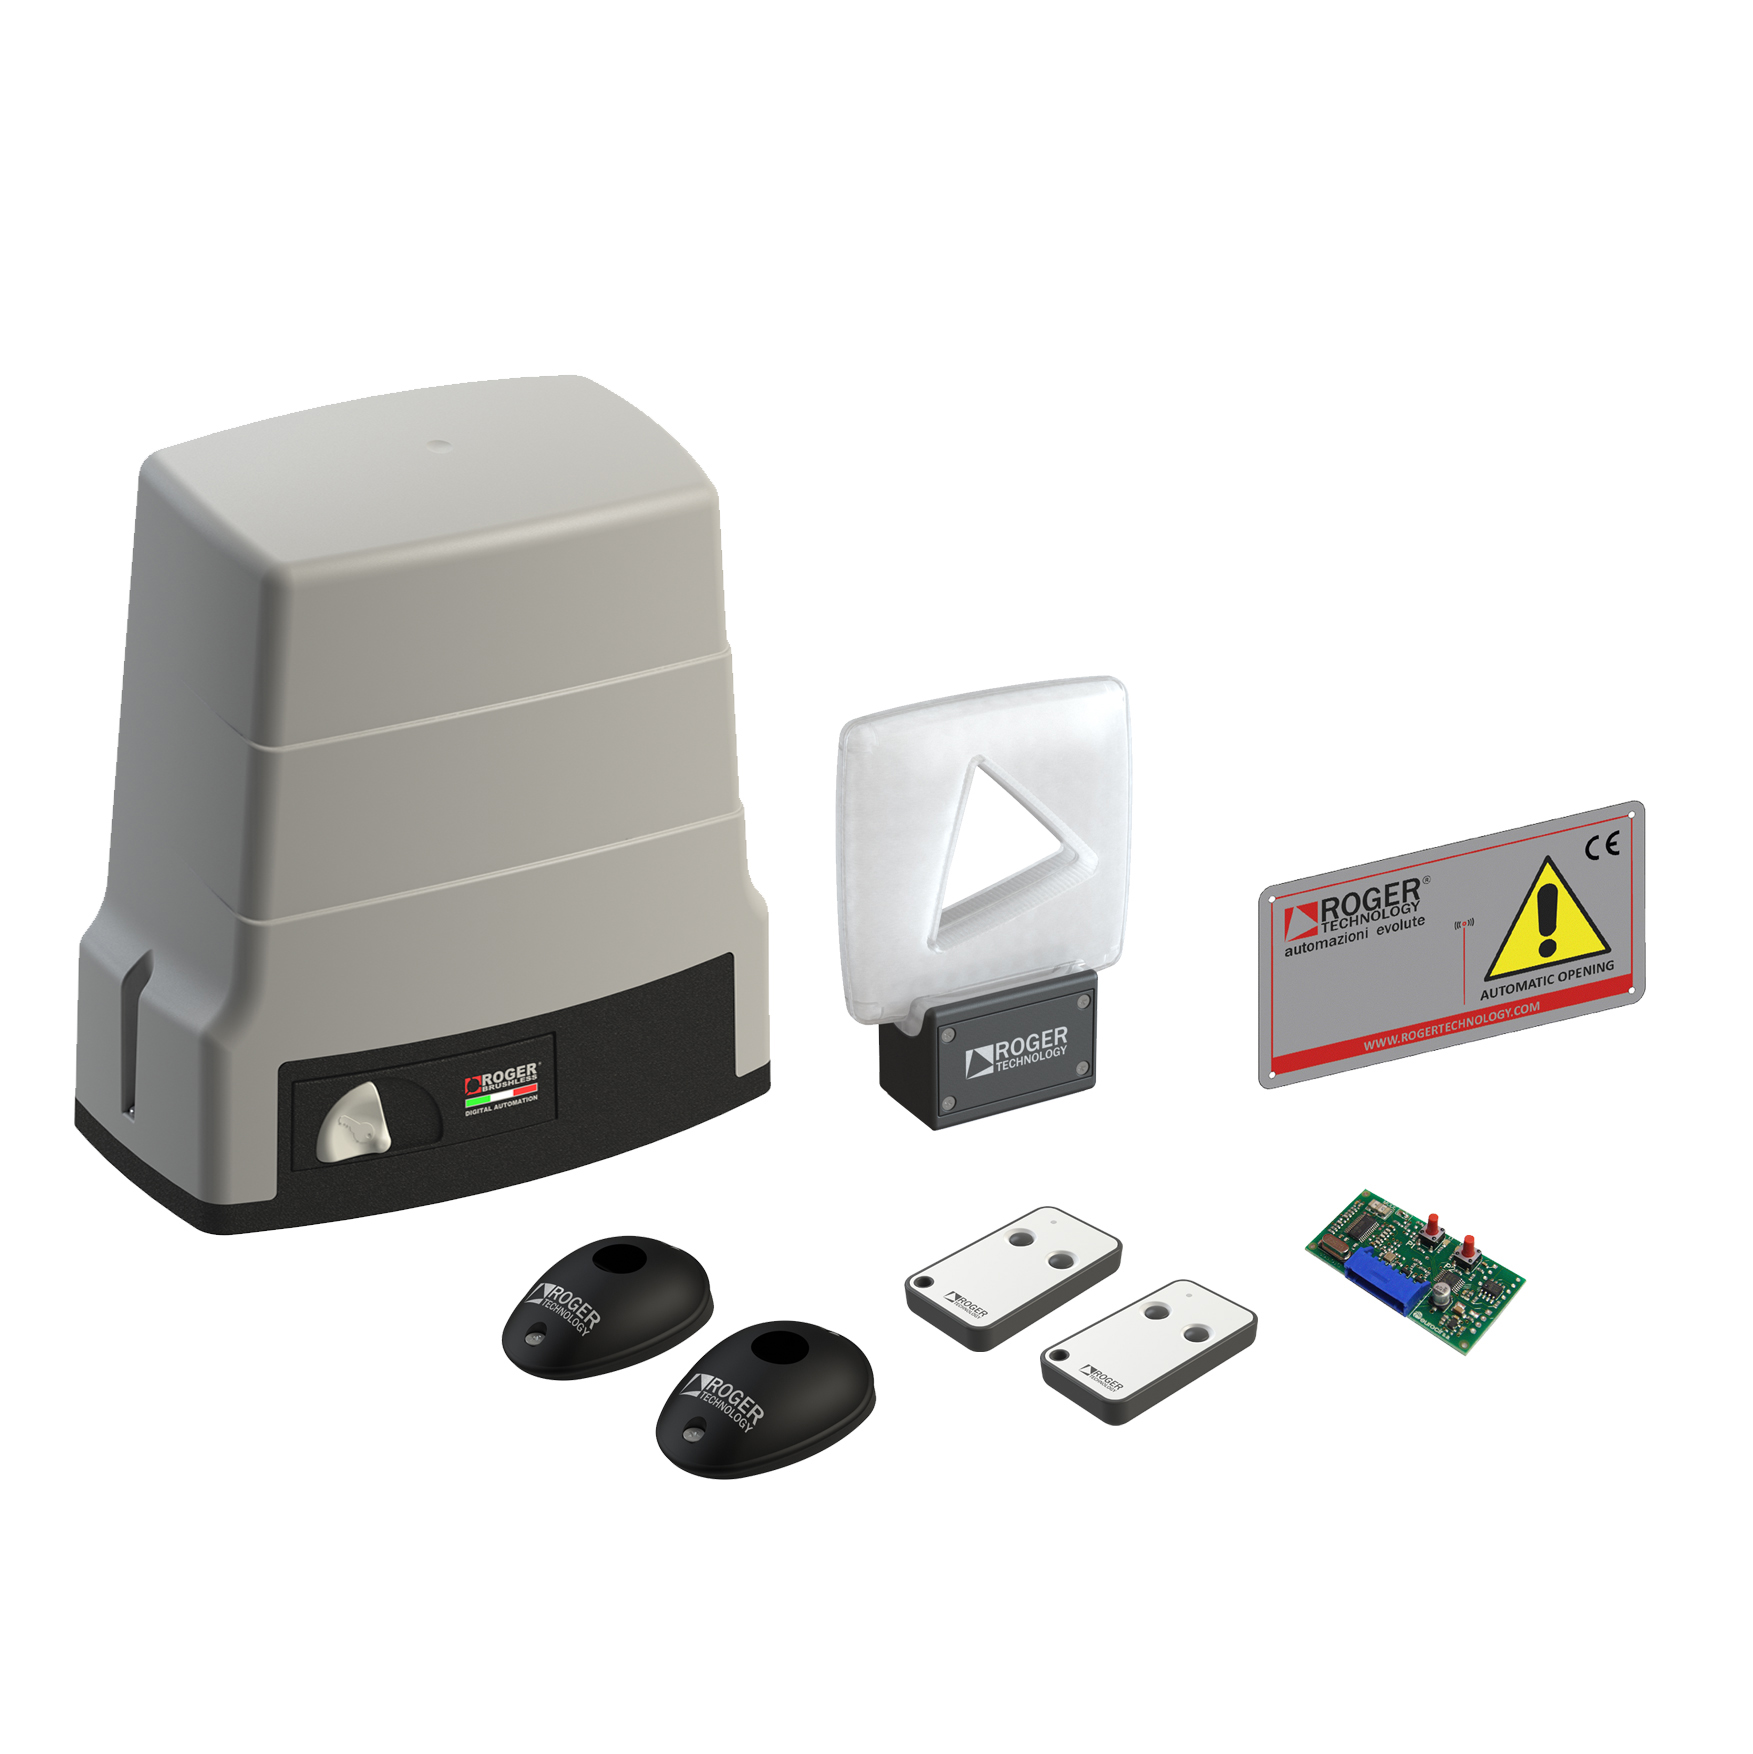 Roger Technology KIT BH30 / 805 automation for sliding gates weighing up to 1000 kg with maxi mechanical limit switches set